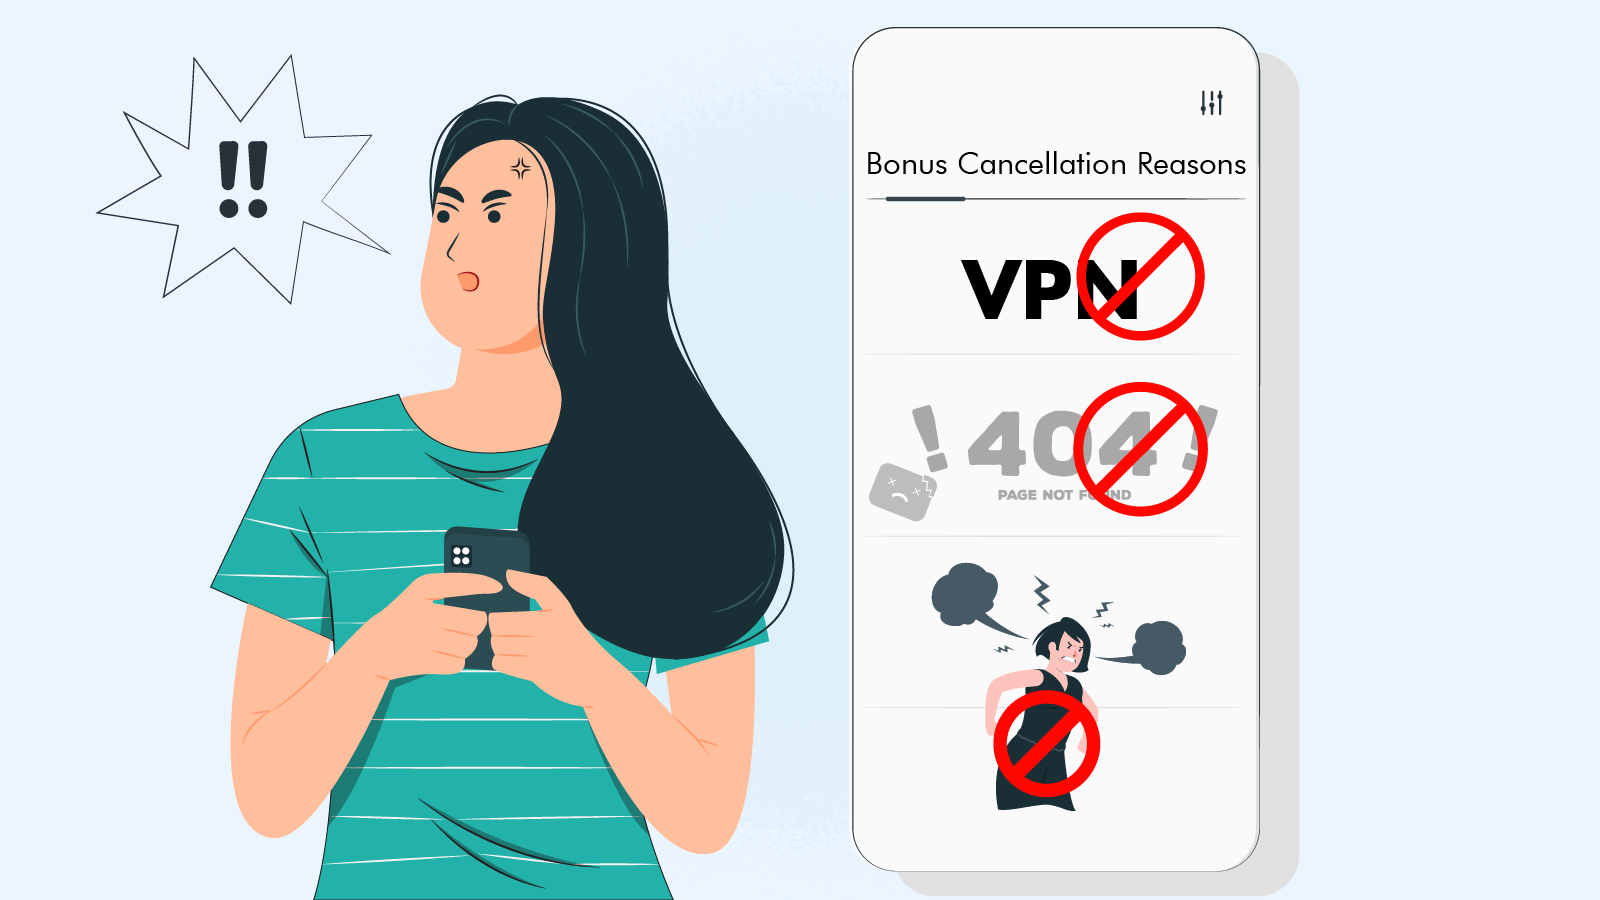 The most common reasons for bonus cancellation